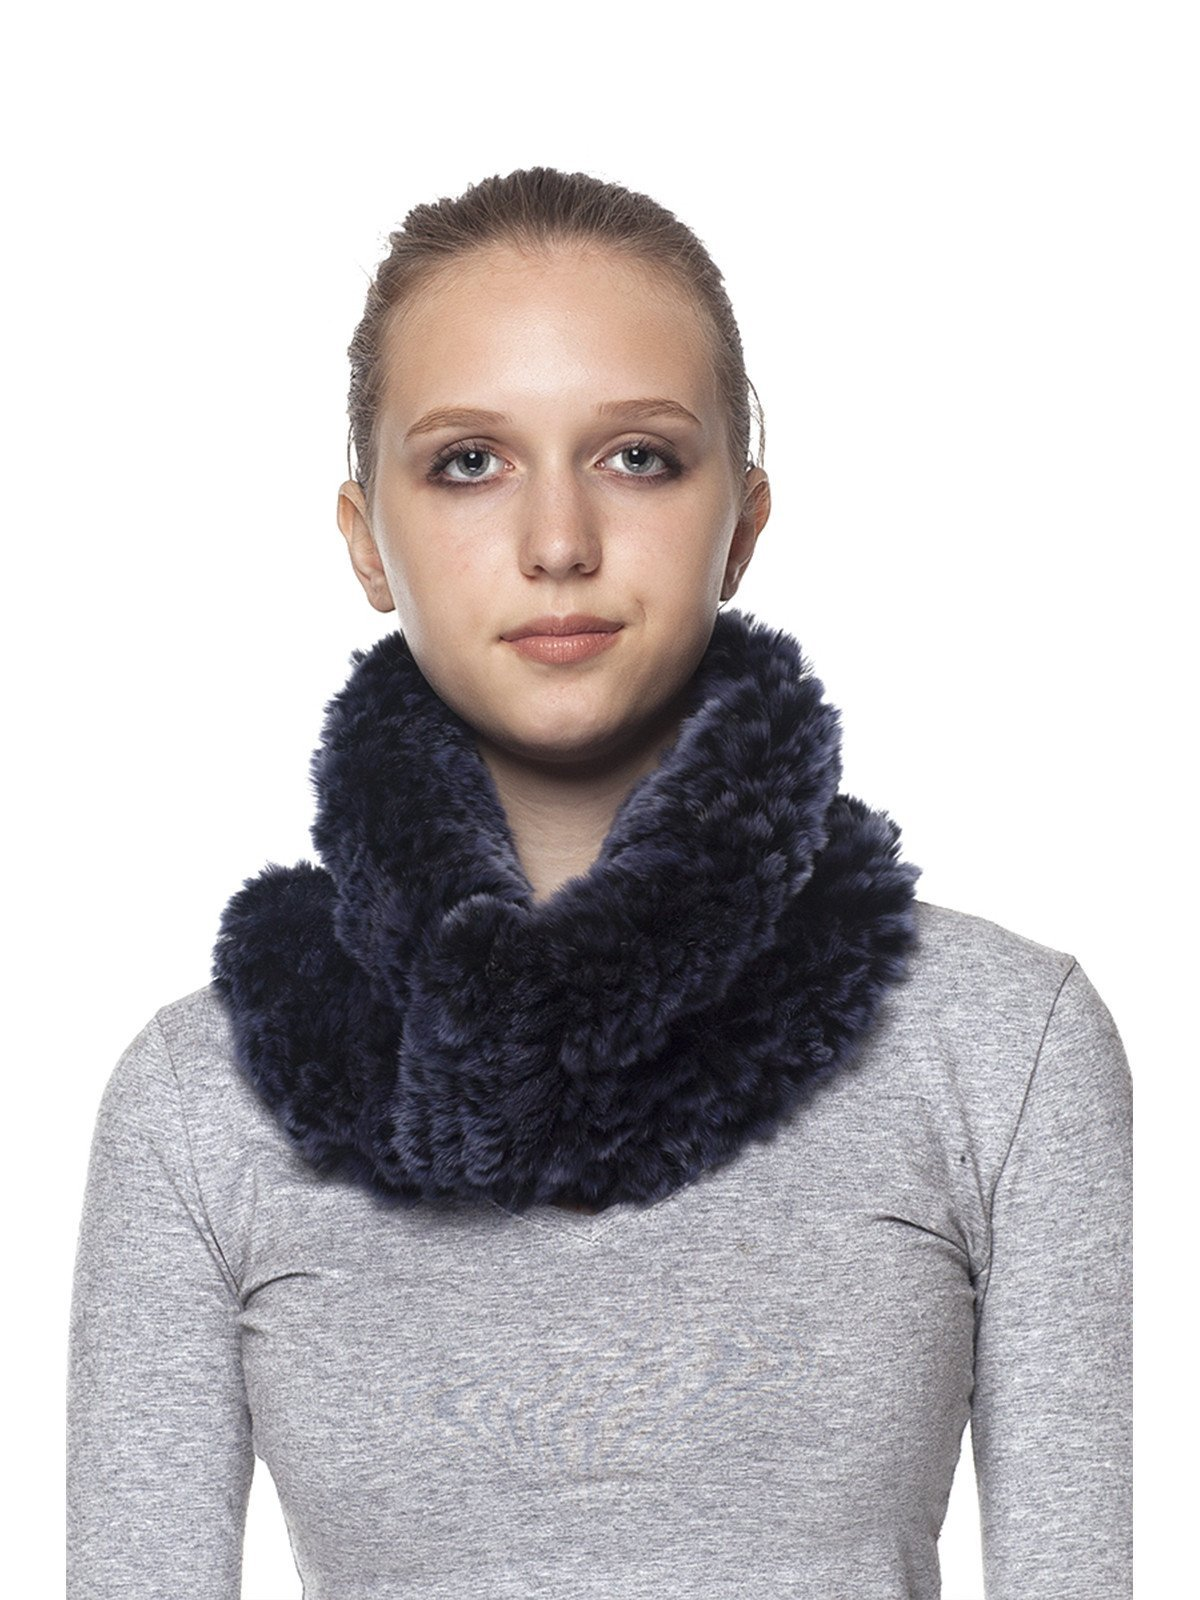 BLUE ELASTIC REX RABBIT NECK WARMER